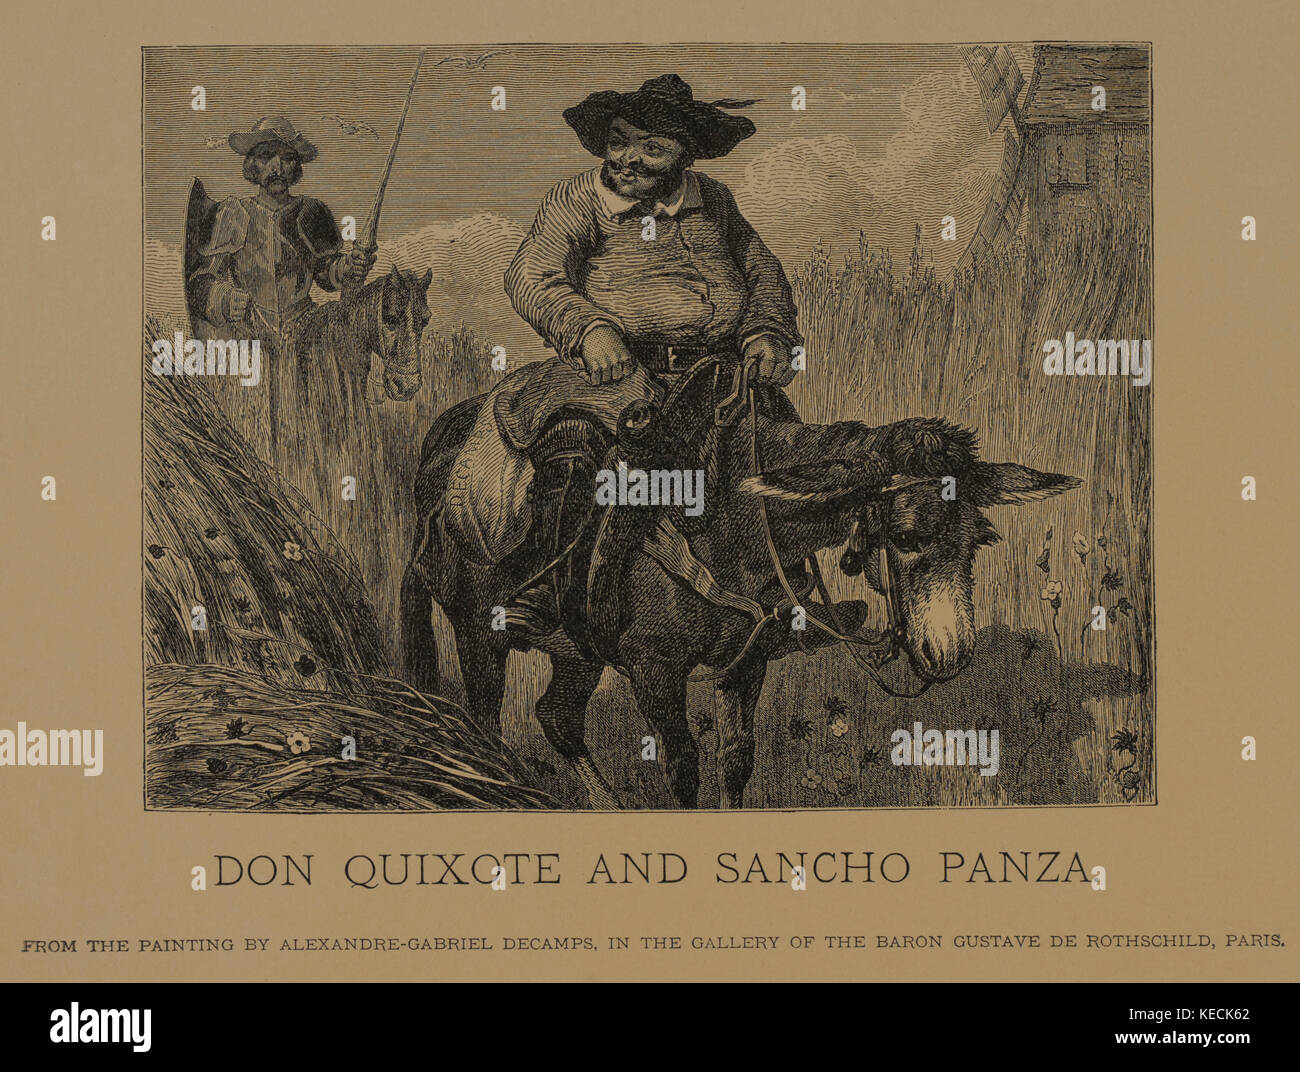 Don quixote comparison with sancho panza